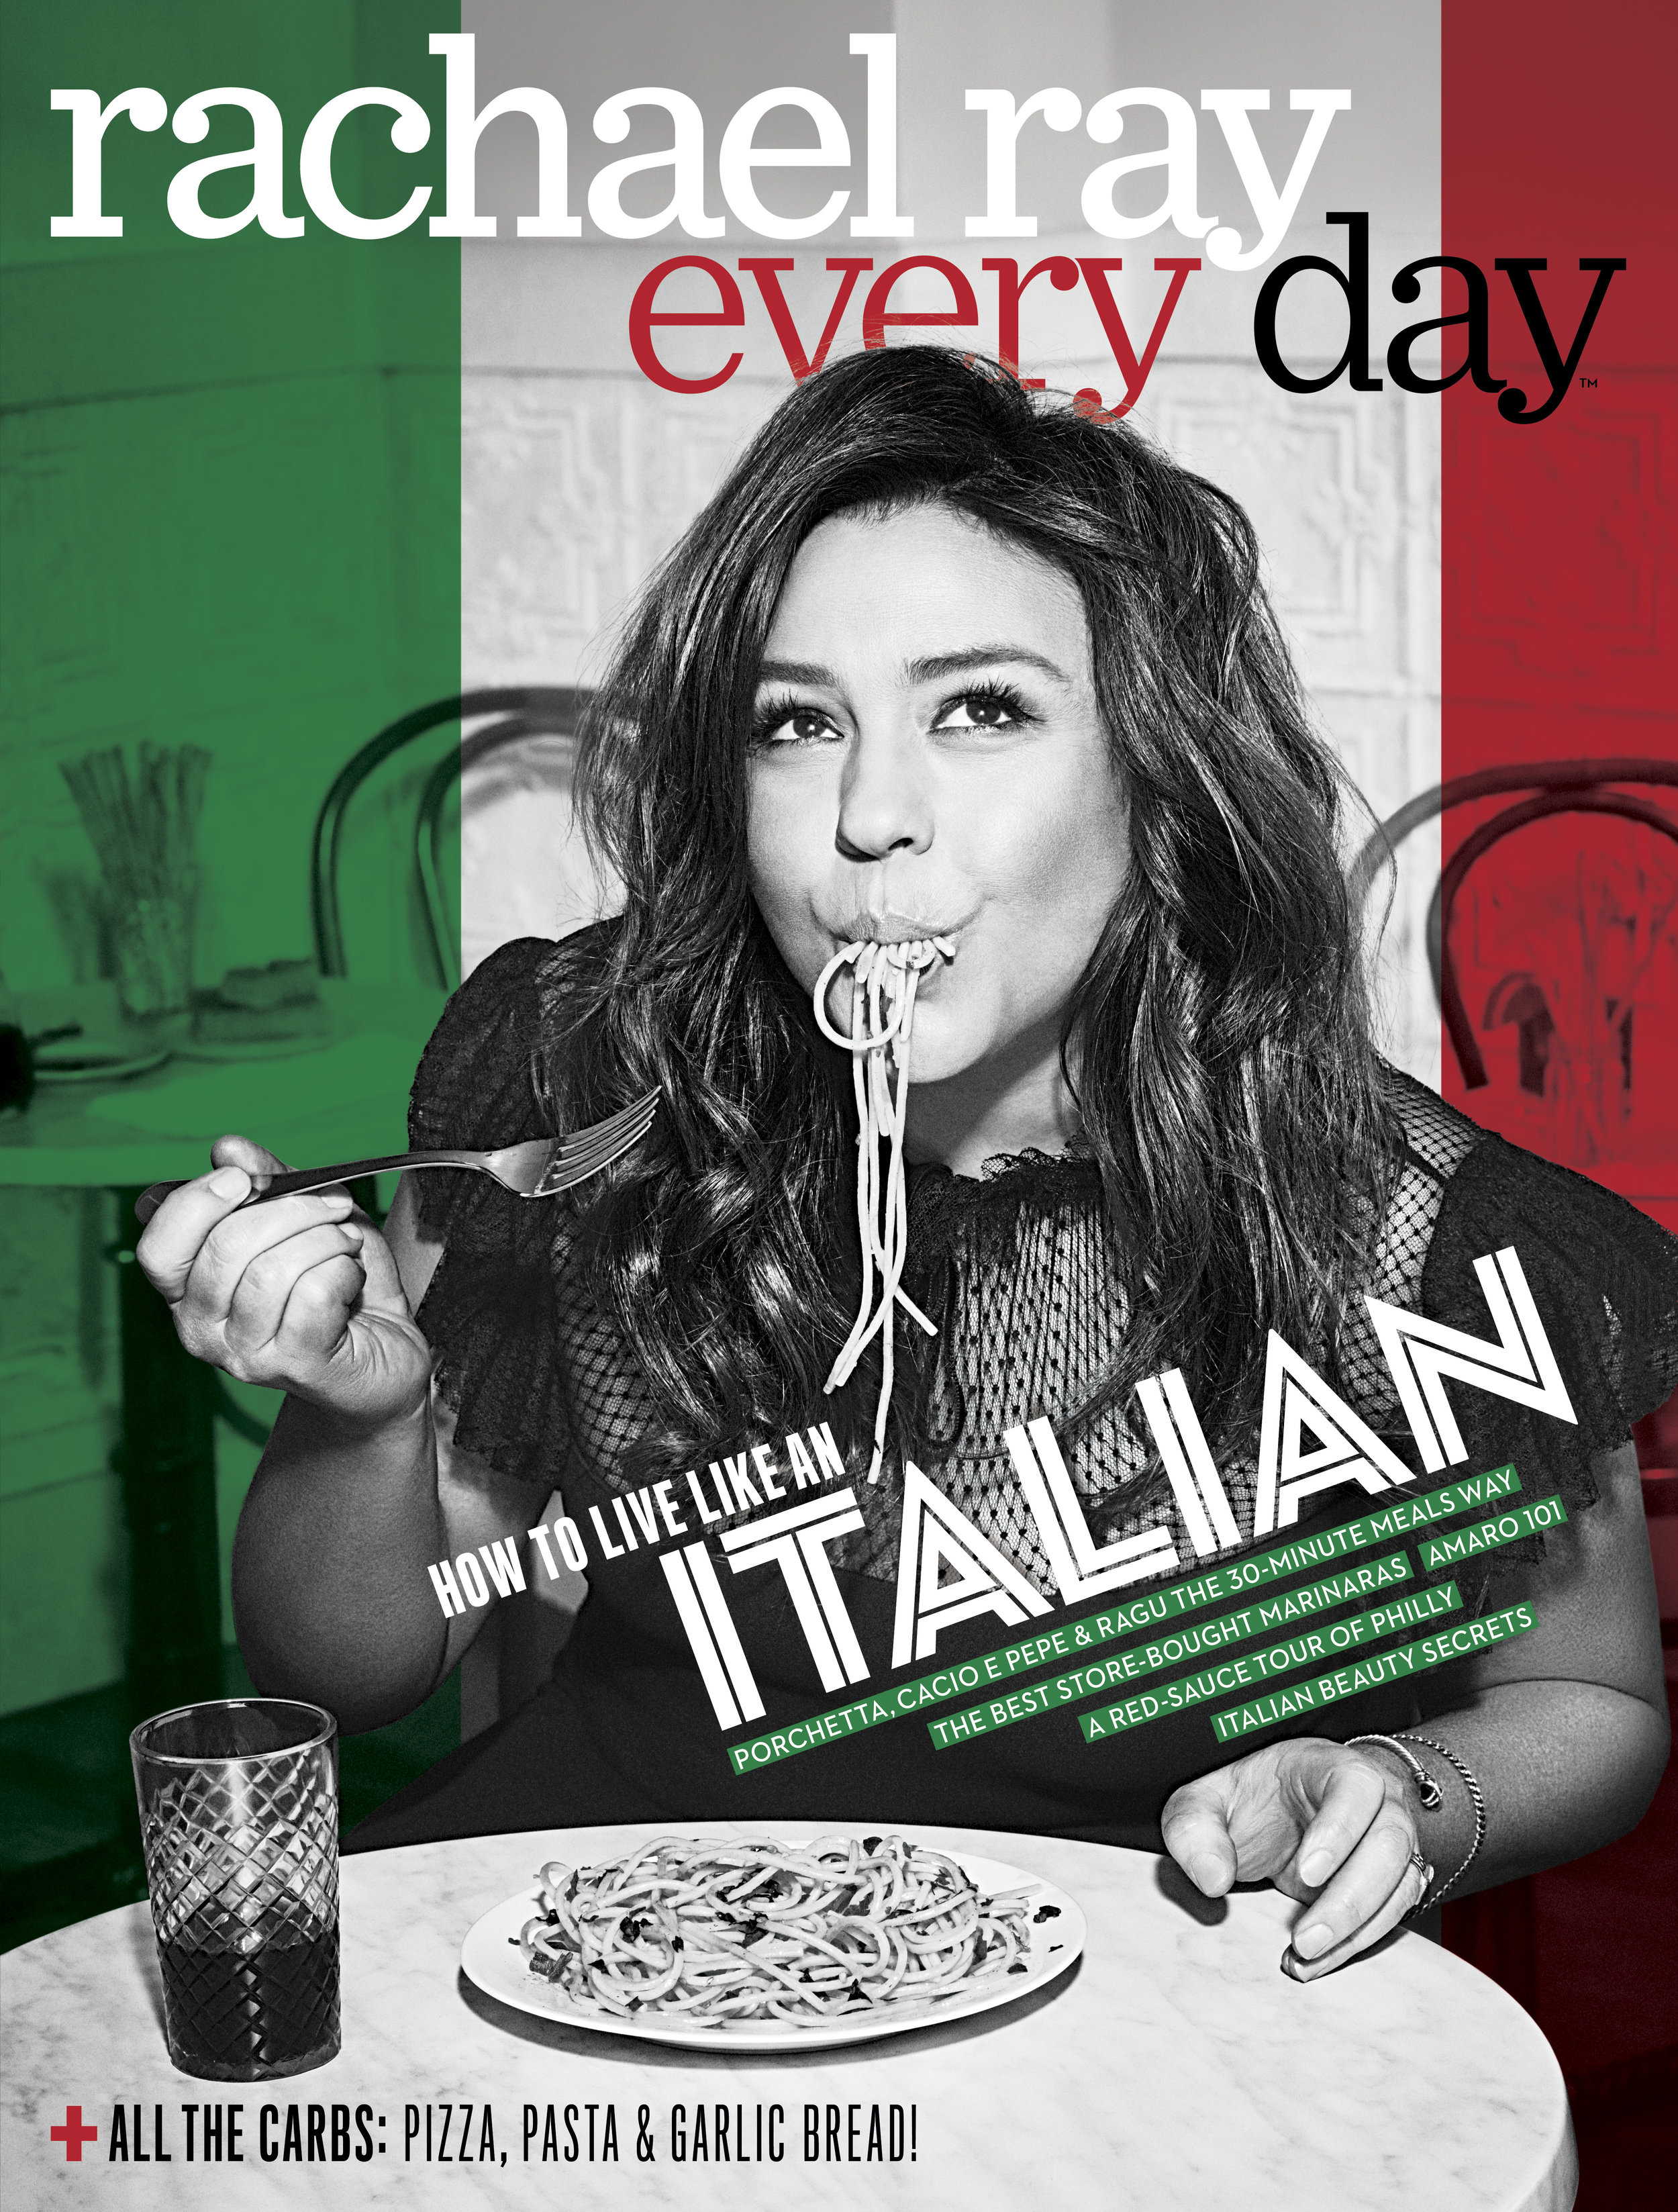 Rachael Ray Every Day - E-42068-488.jpg